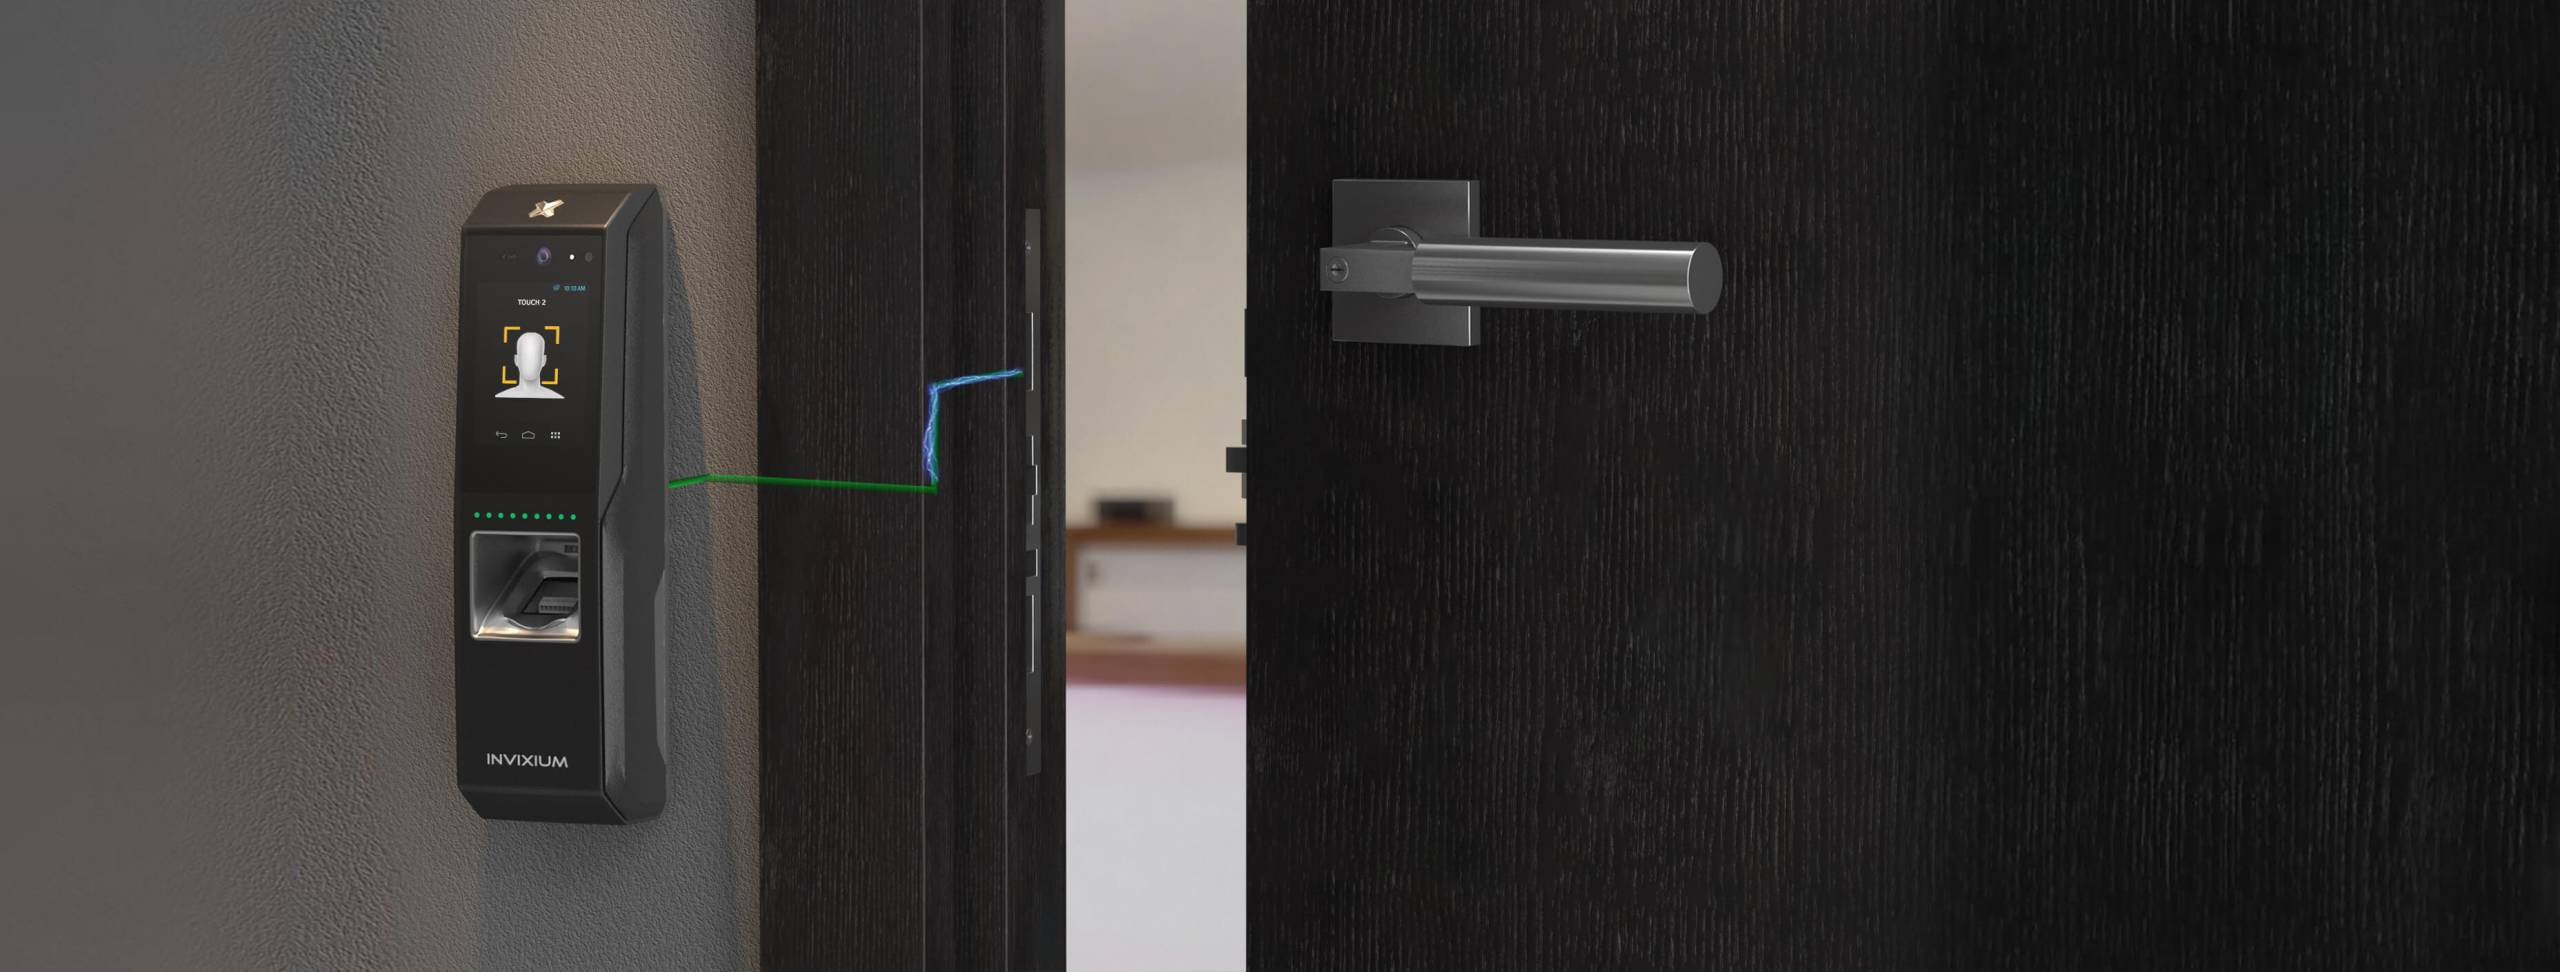 Door Access control TOUCH 2 FACE